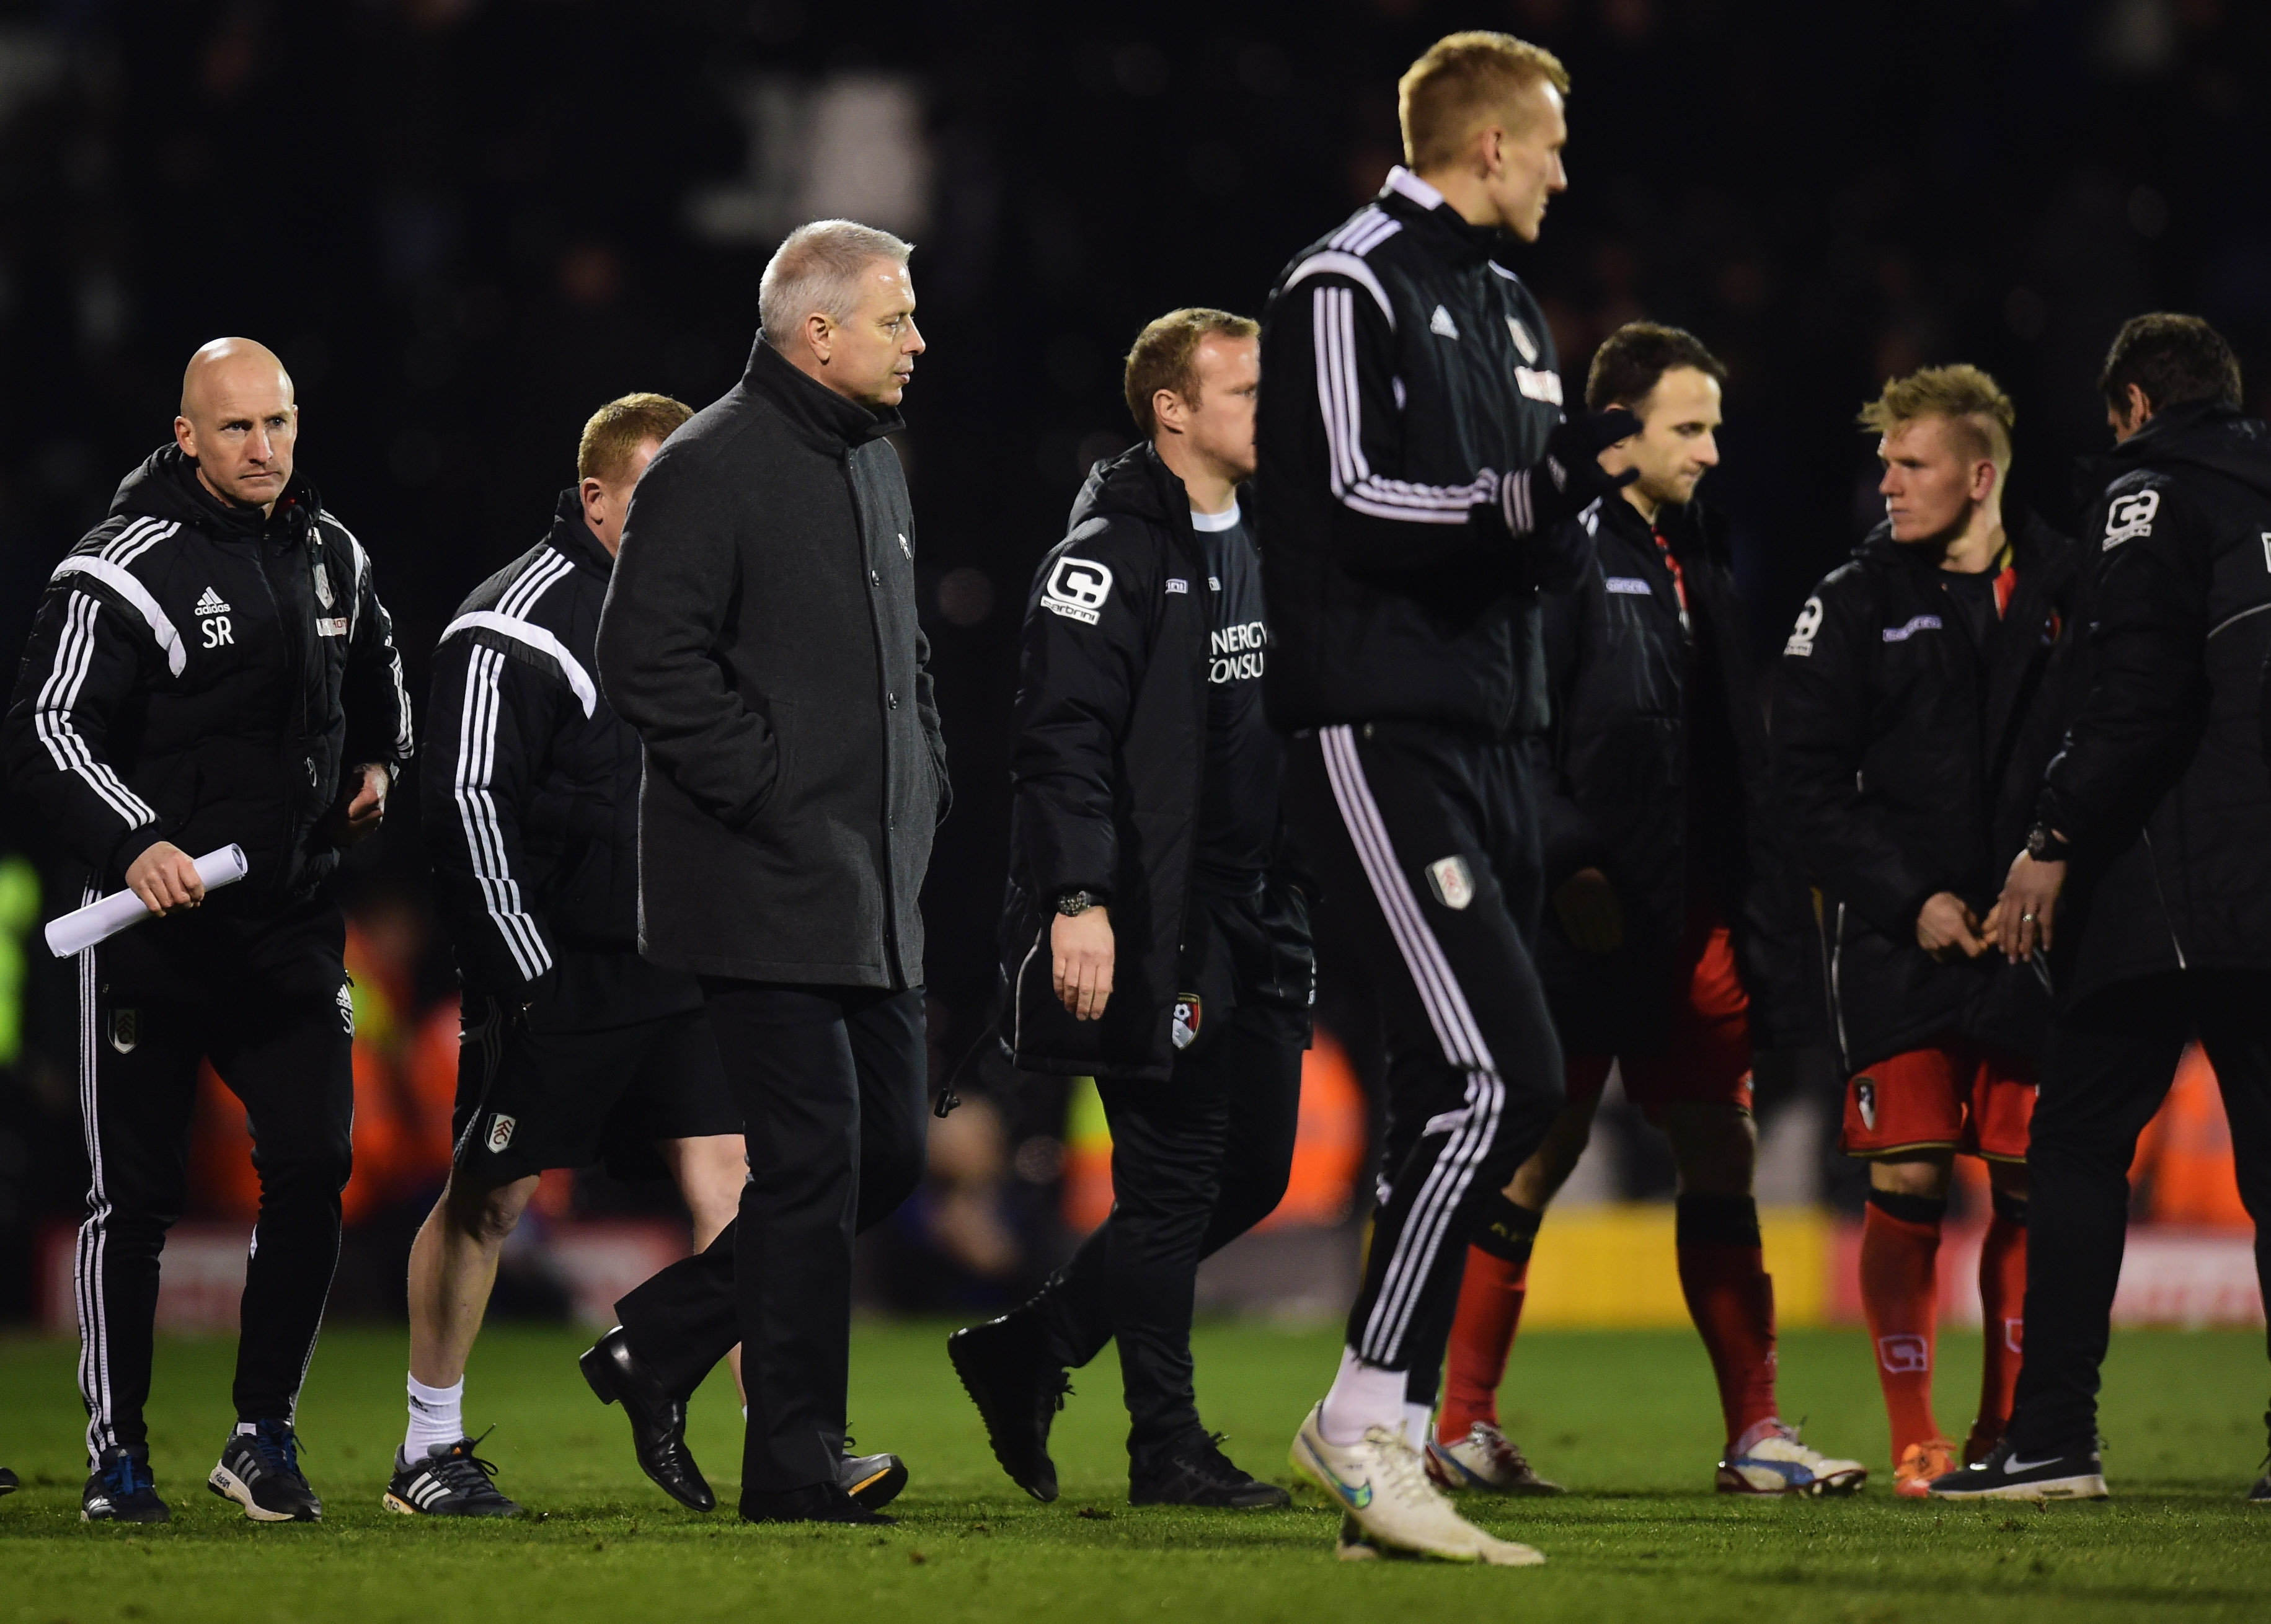 Fulham invented a fake 16-year-old girl to bait its players on Facebook